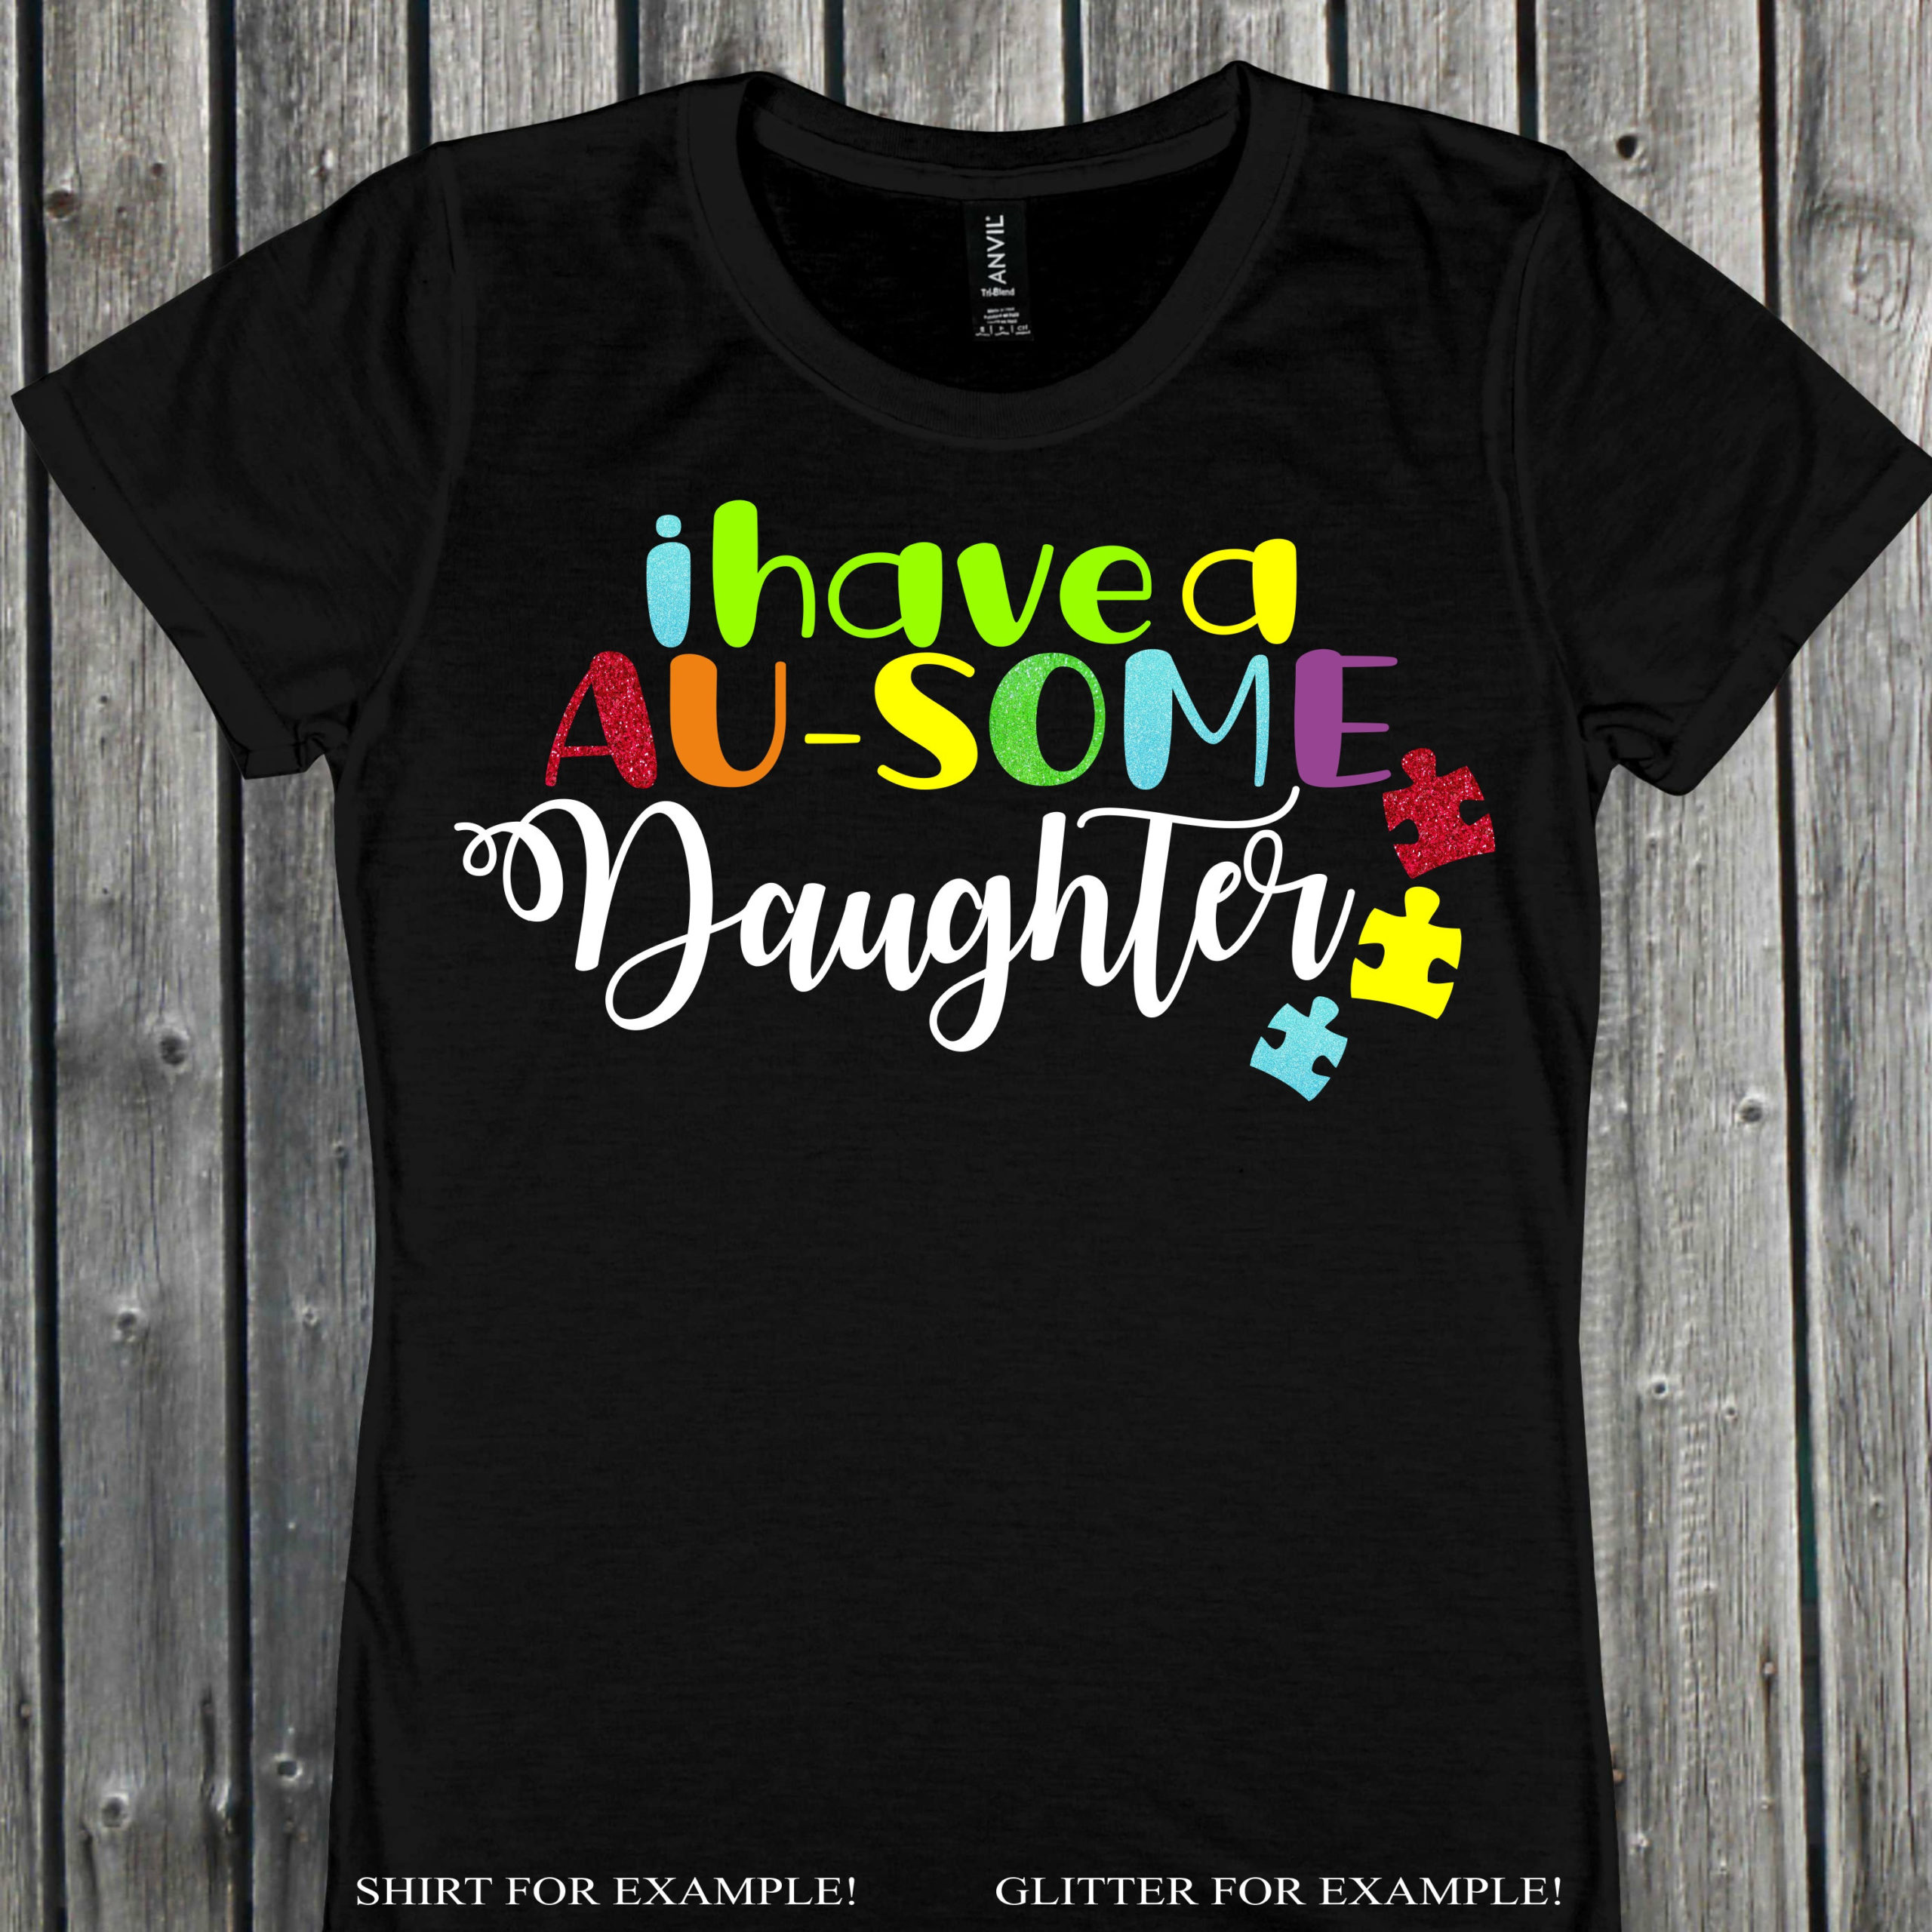 Ausome-daughter-svg-autism-svg-awareness-svg-autism-puzzle-svg-puzzle-svg-tshirt-svg-mom-svg-svg-for-cricut-silhouette-cut-file-5ef79137